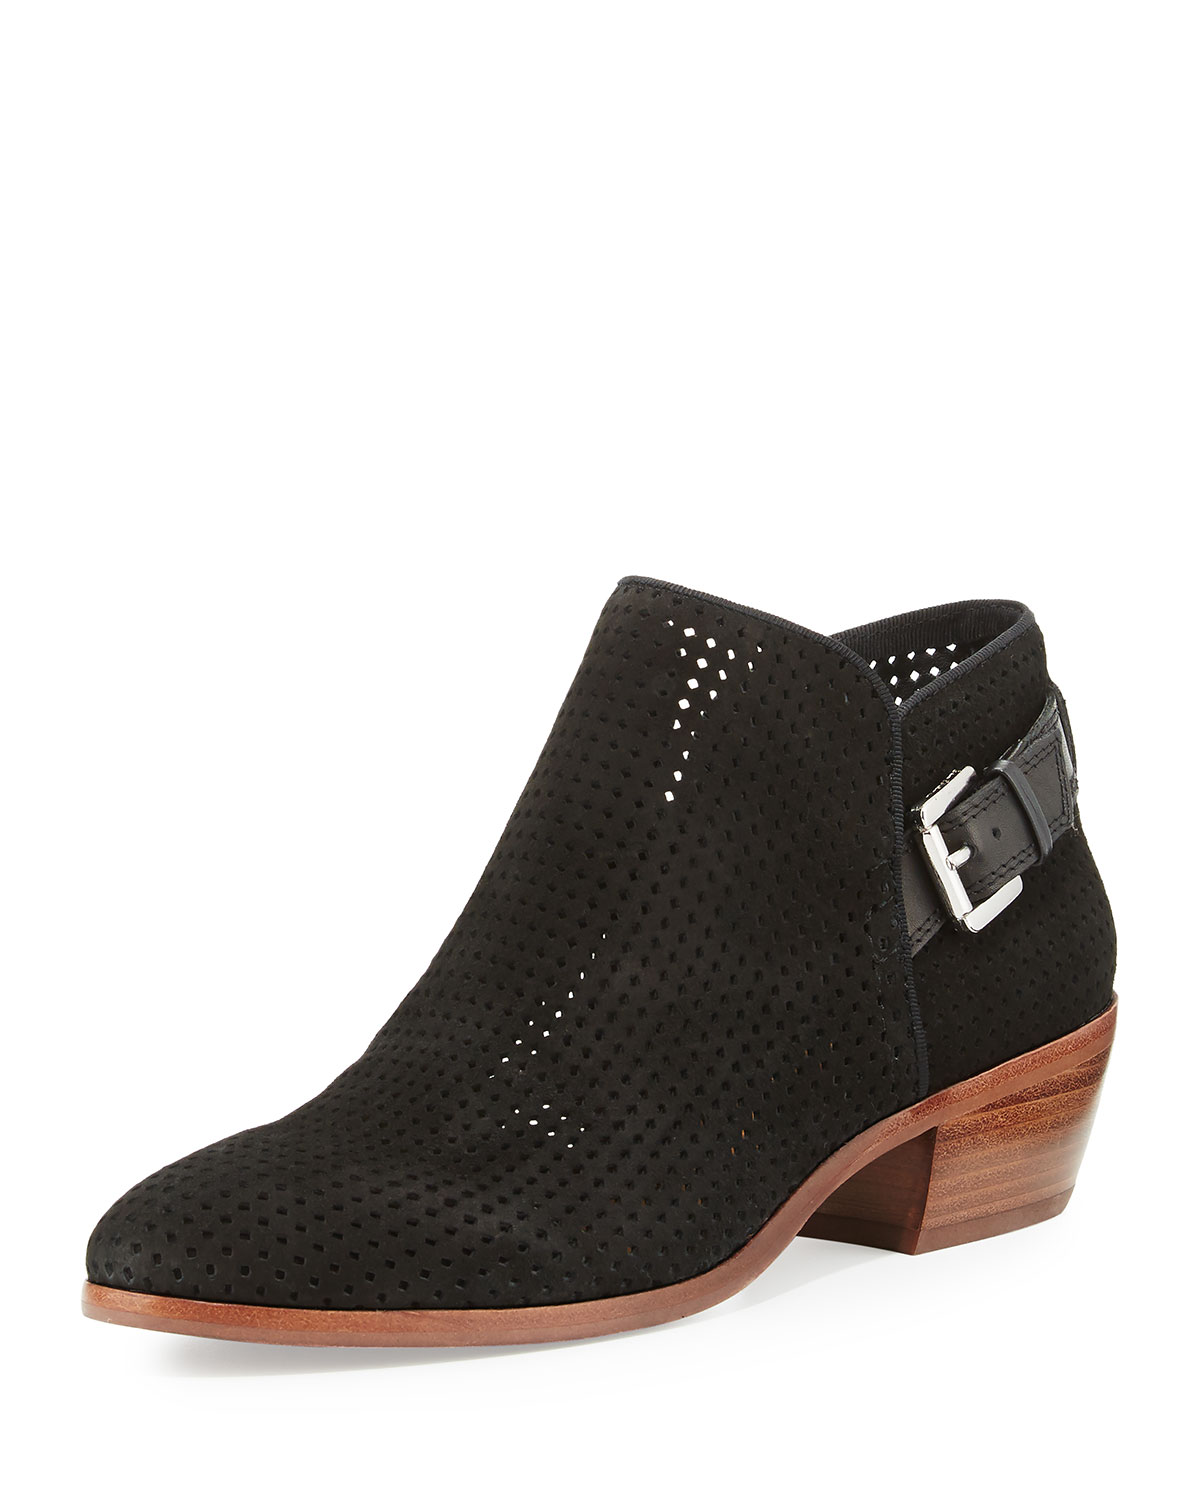 c512ec82fcaf34 Sam Edelman Paula Perforated Suede Bootie